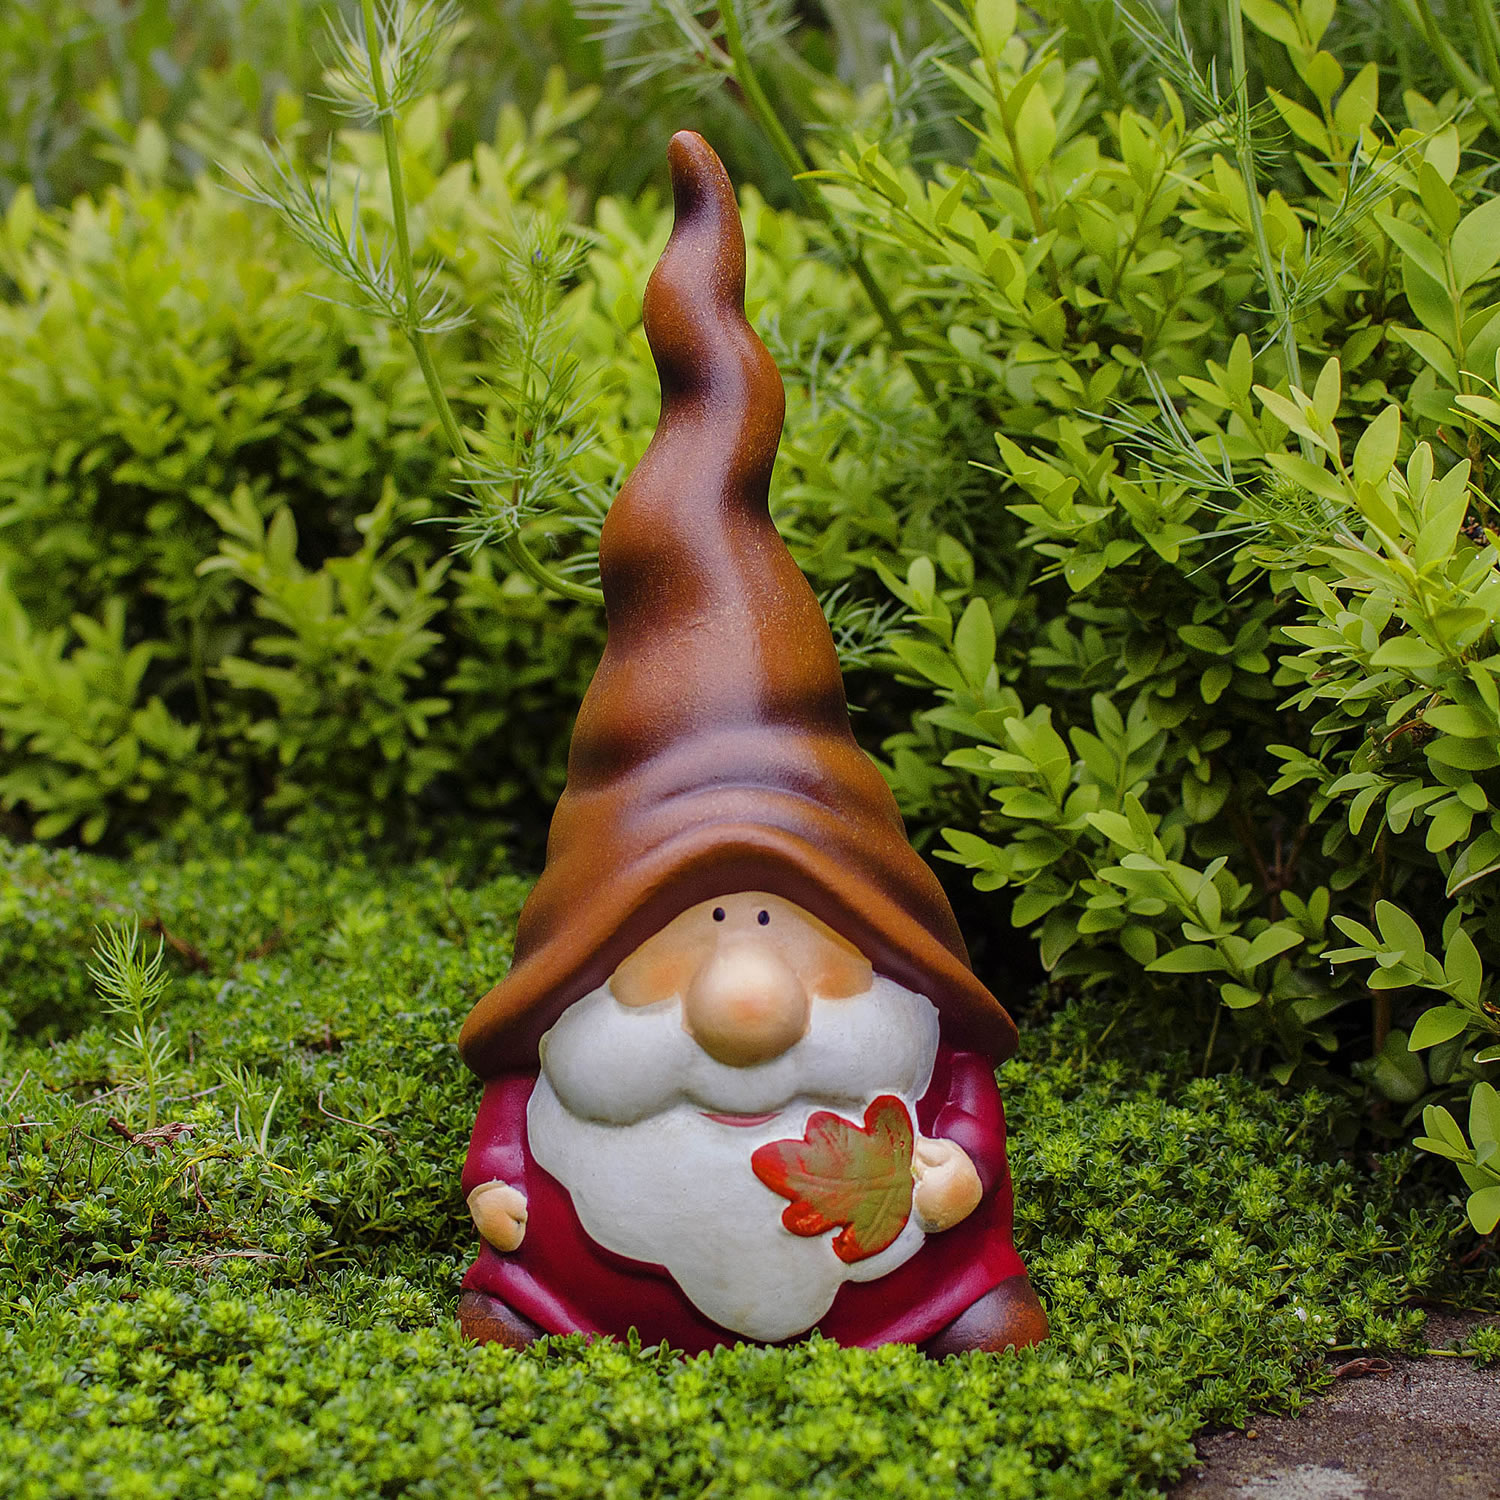 Gnome In Garden: Austin The Autumnal Terracotta Garden Gnome Ornament With